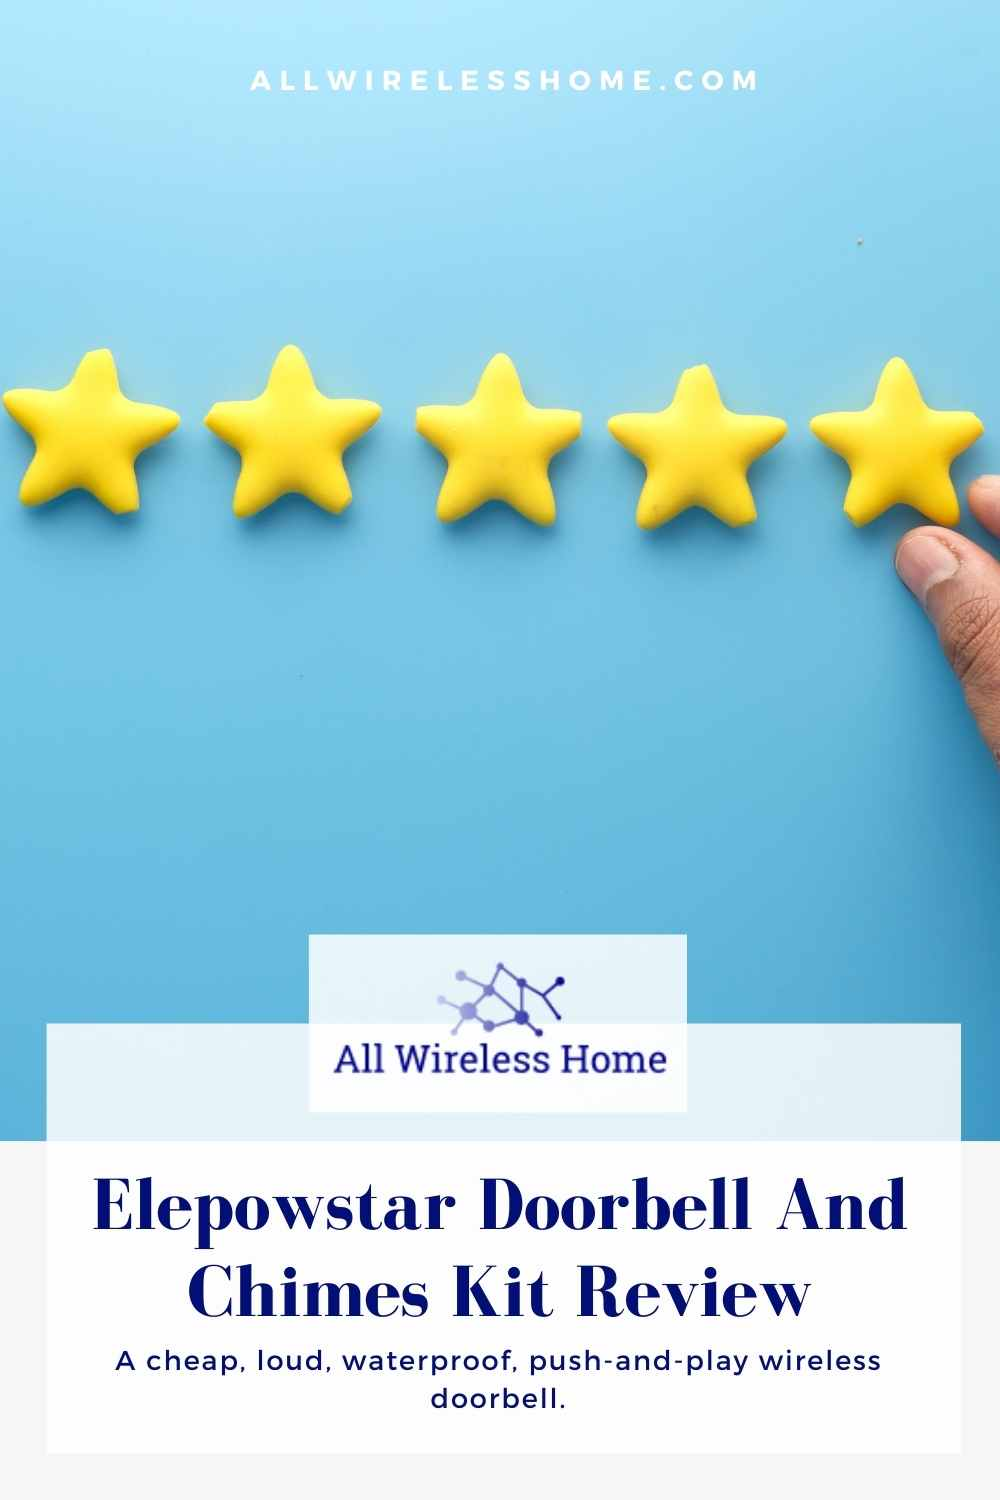 Elepowstar Doorbell And Chimes Kit Review (1)